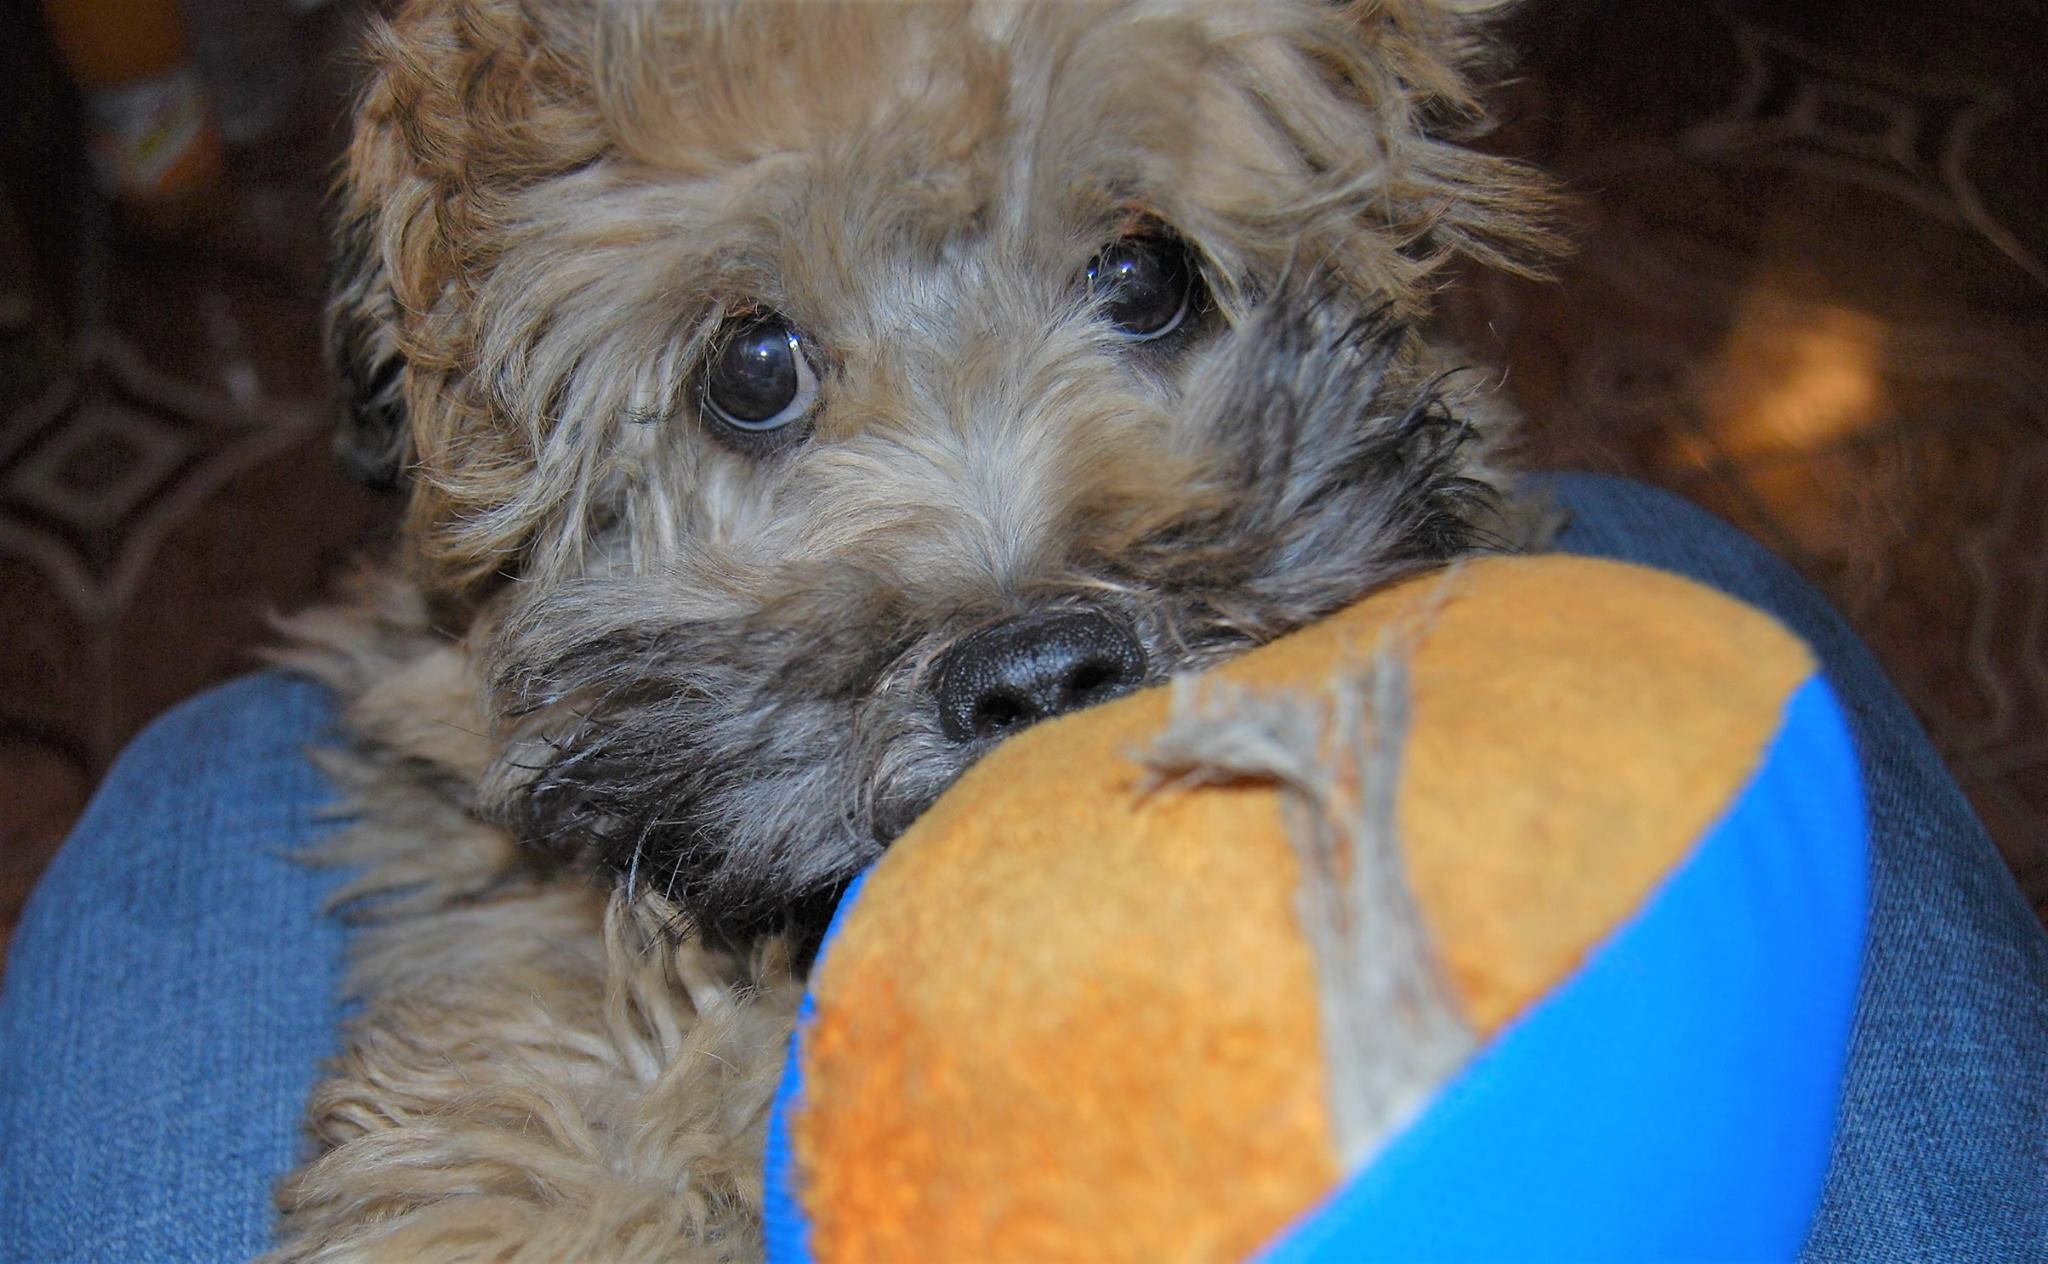 """Grab ball and attempt to keep possession, using the """"puppy eyes"""" strategy…"""